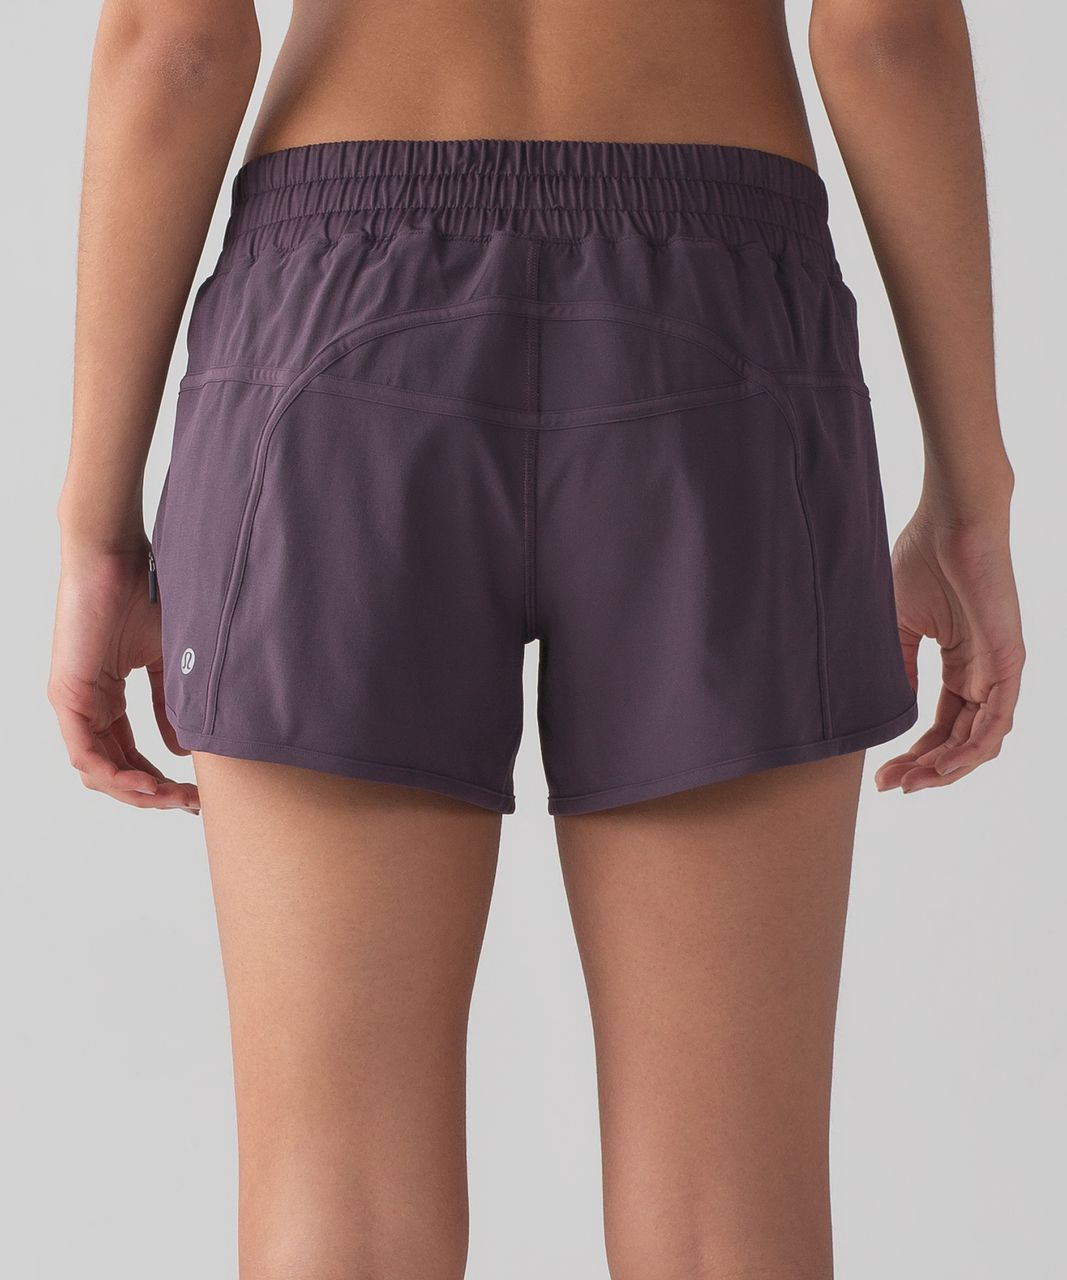 "Lululemon Tracker Short IV (4-way Stretch 4"") - Black Currant"